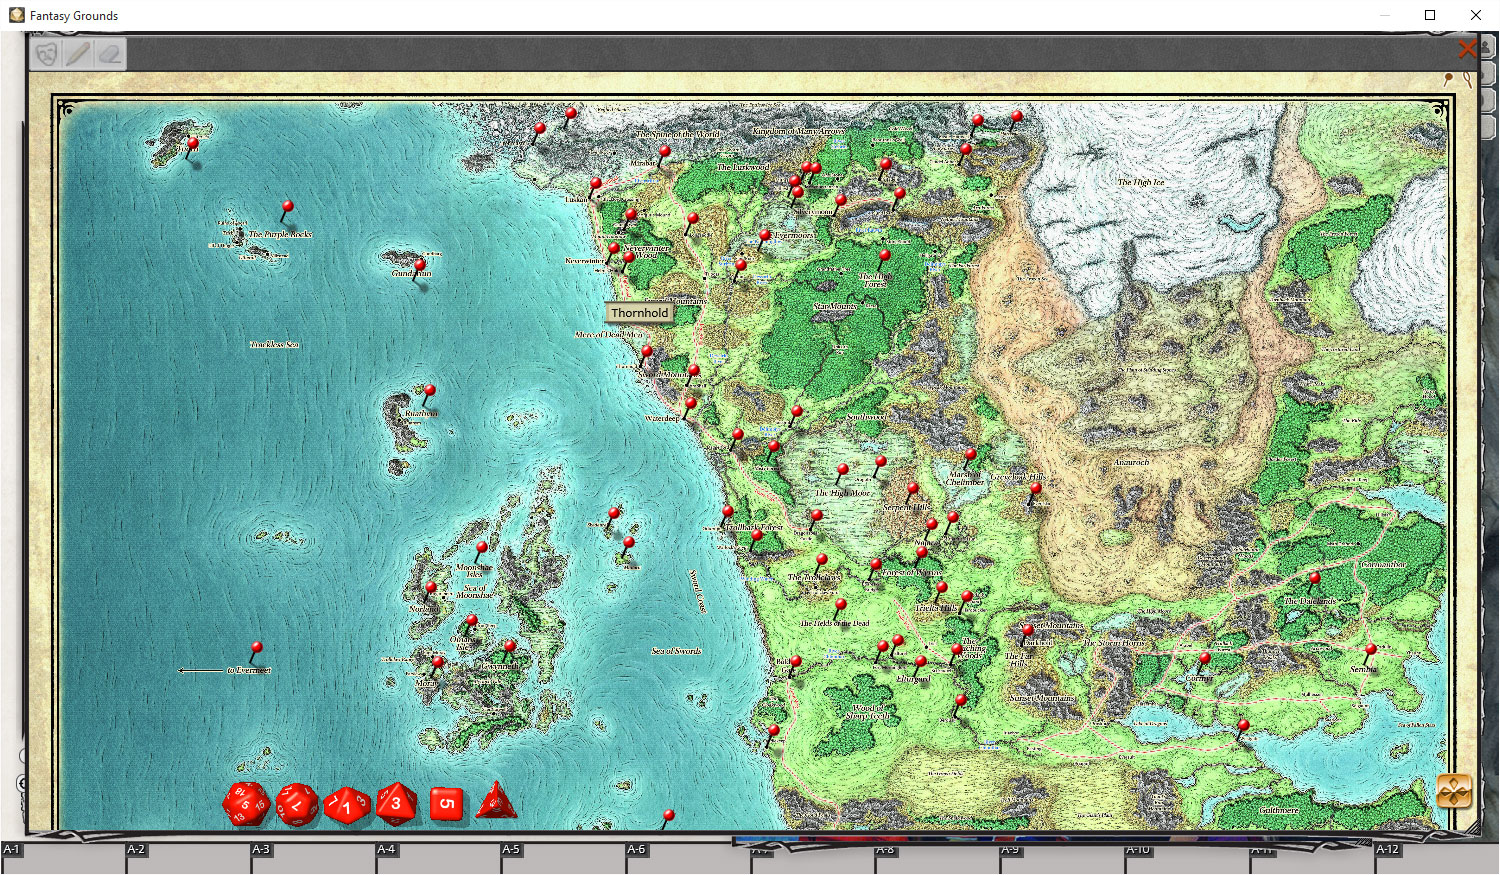 Fantasy Grounds - D&D Sword Coast Adventurer's Guide screenshot